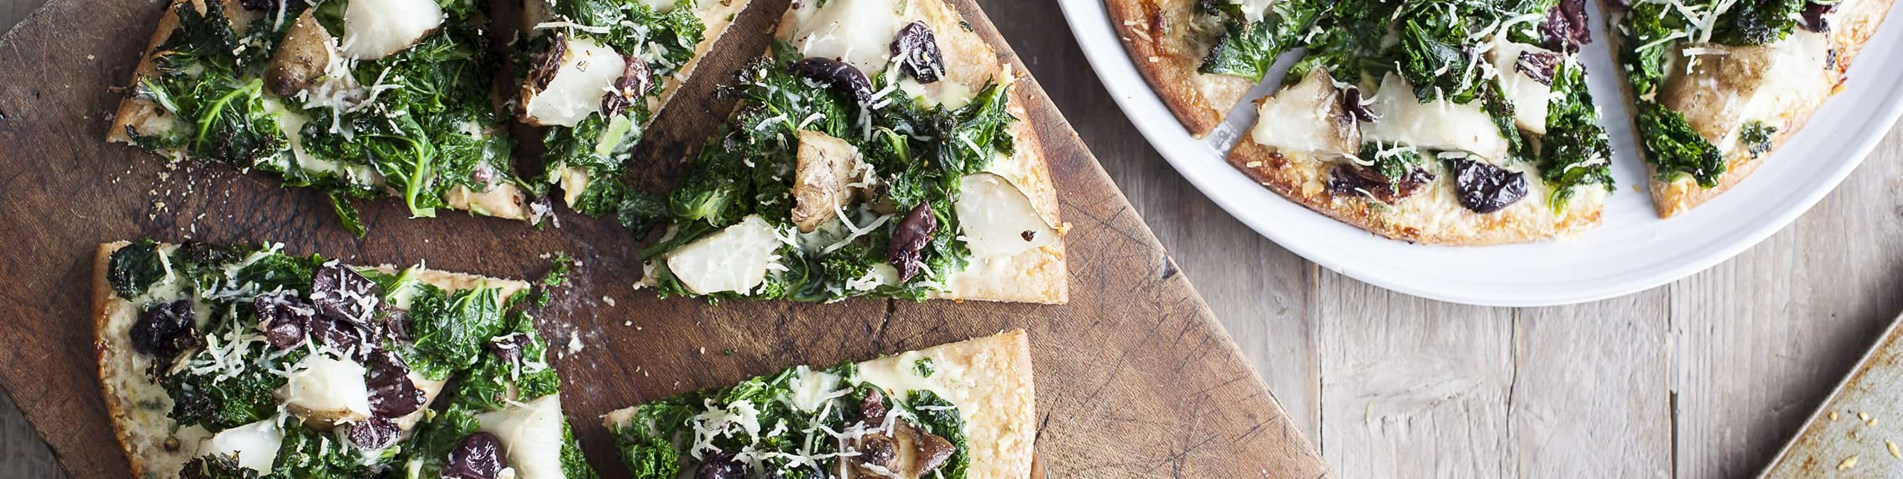 Week 10 Bianco Spelt Pizza with Jerusalem Artichokes, Kale & Rosemary.jpg